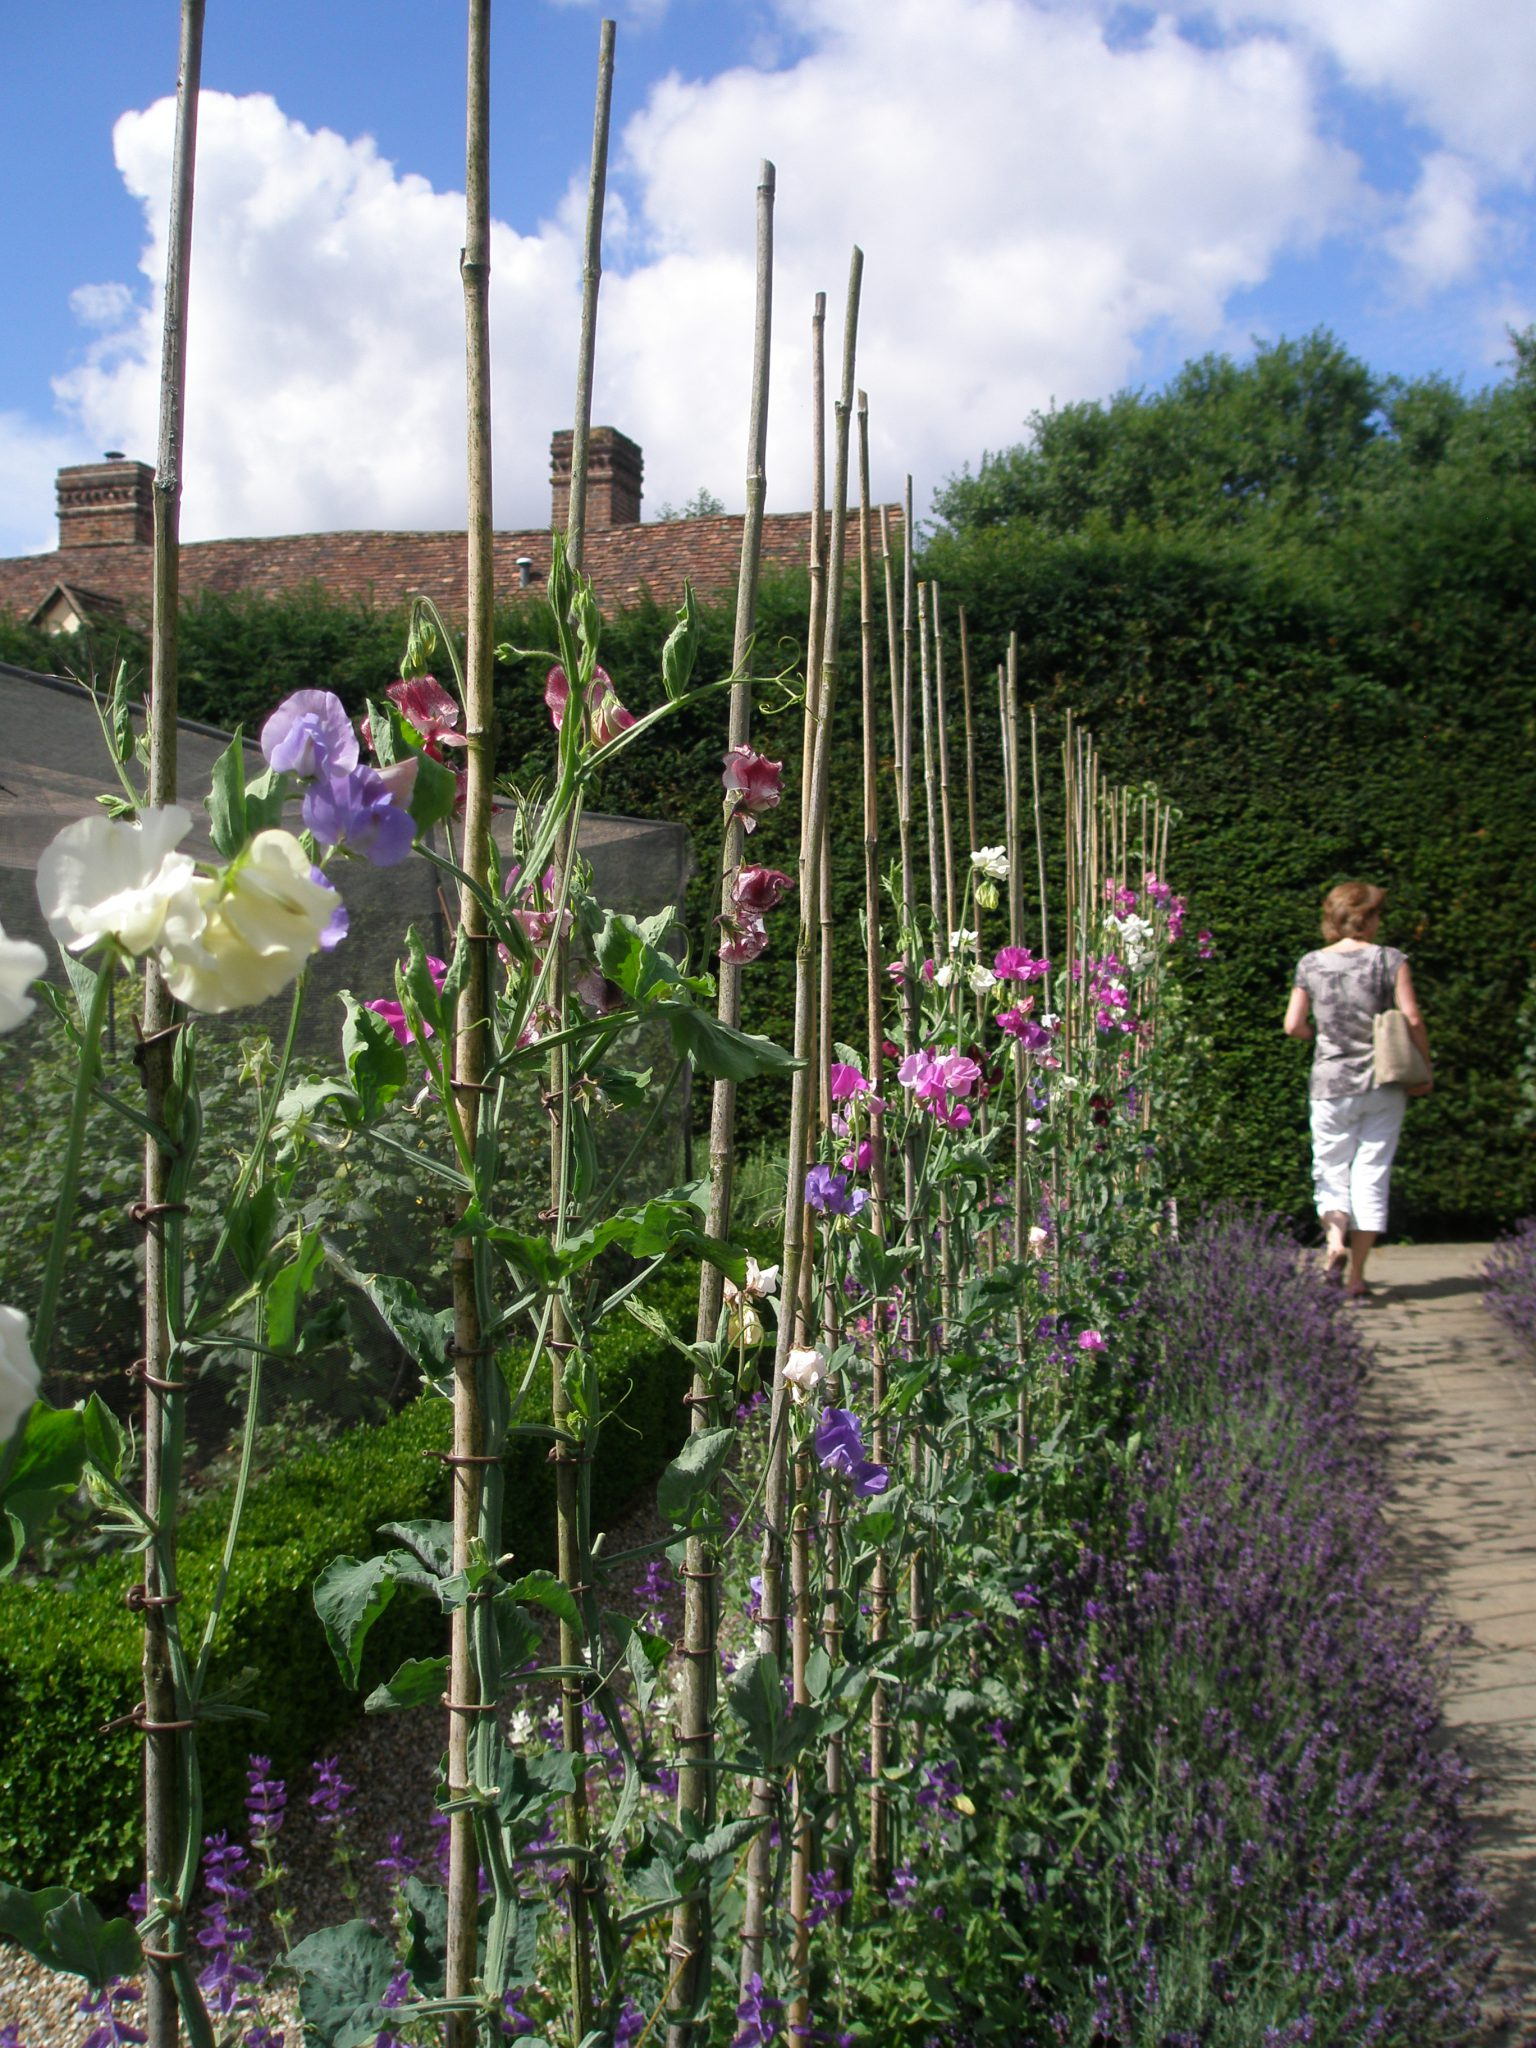 Amanda strolls in the Cuttings Garden, as the fragrances of Sweet Peas and Lavender mingle.